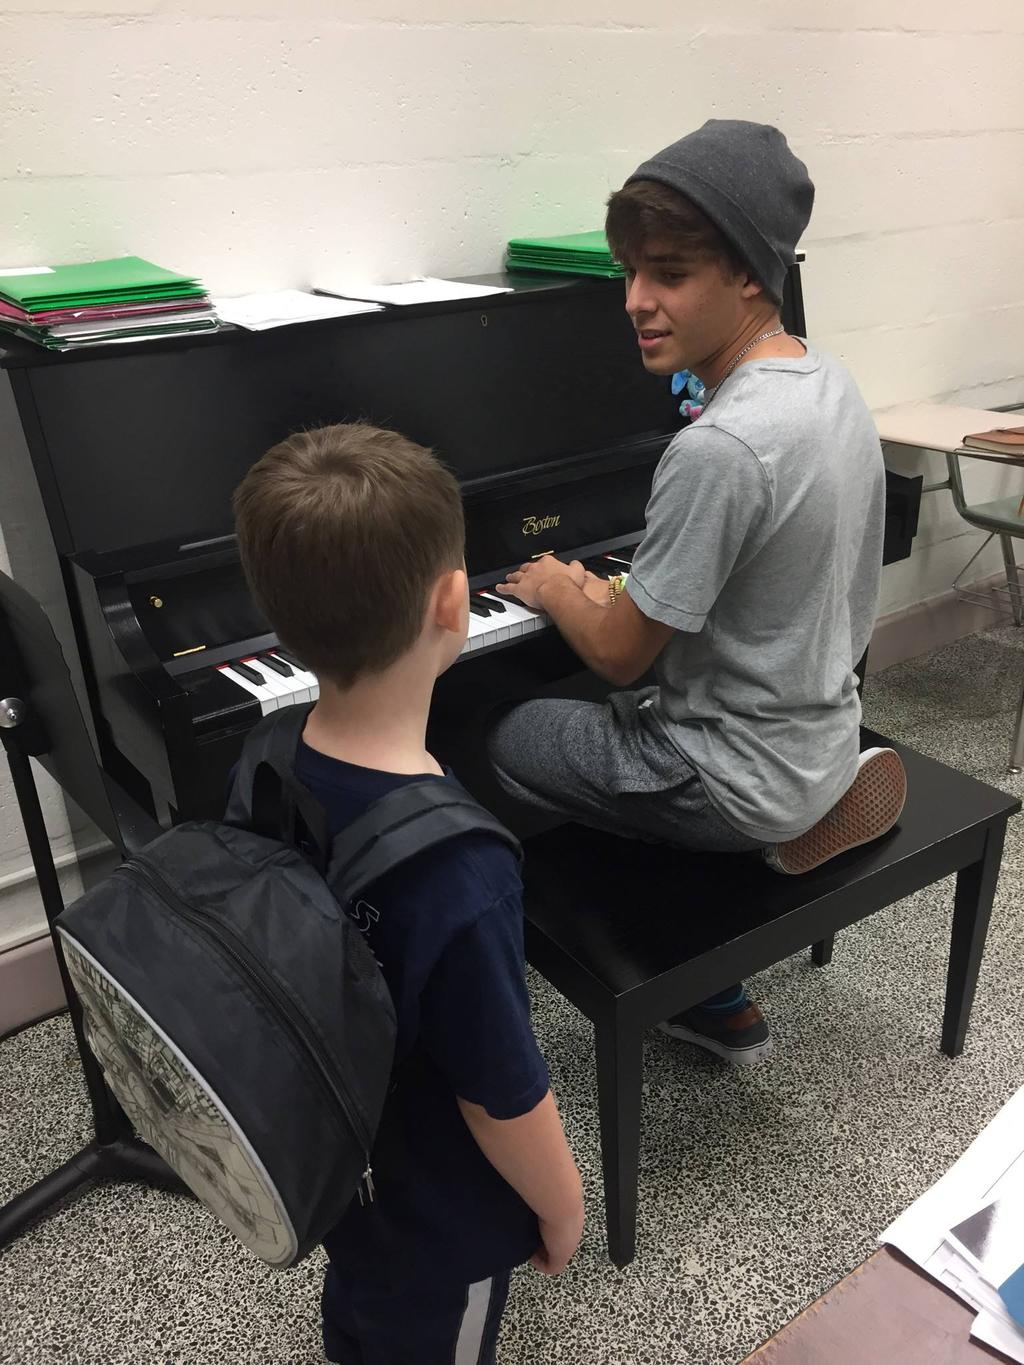 Additionally, if they are taking private lessons, this is a great way for them to add social aspect to their lessons.